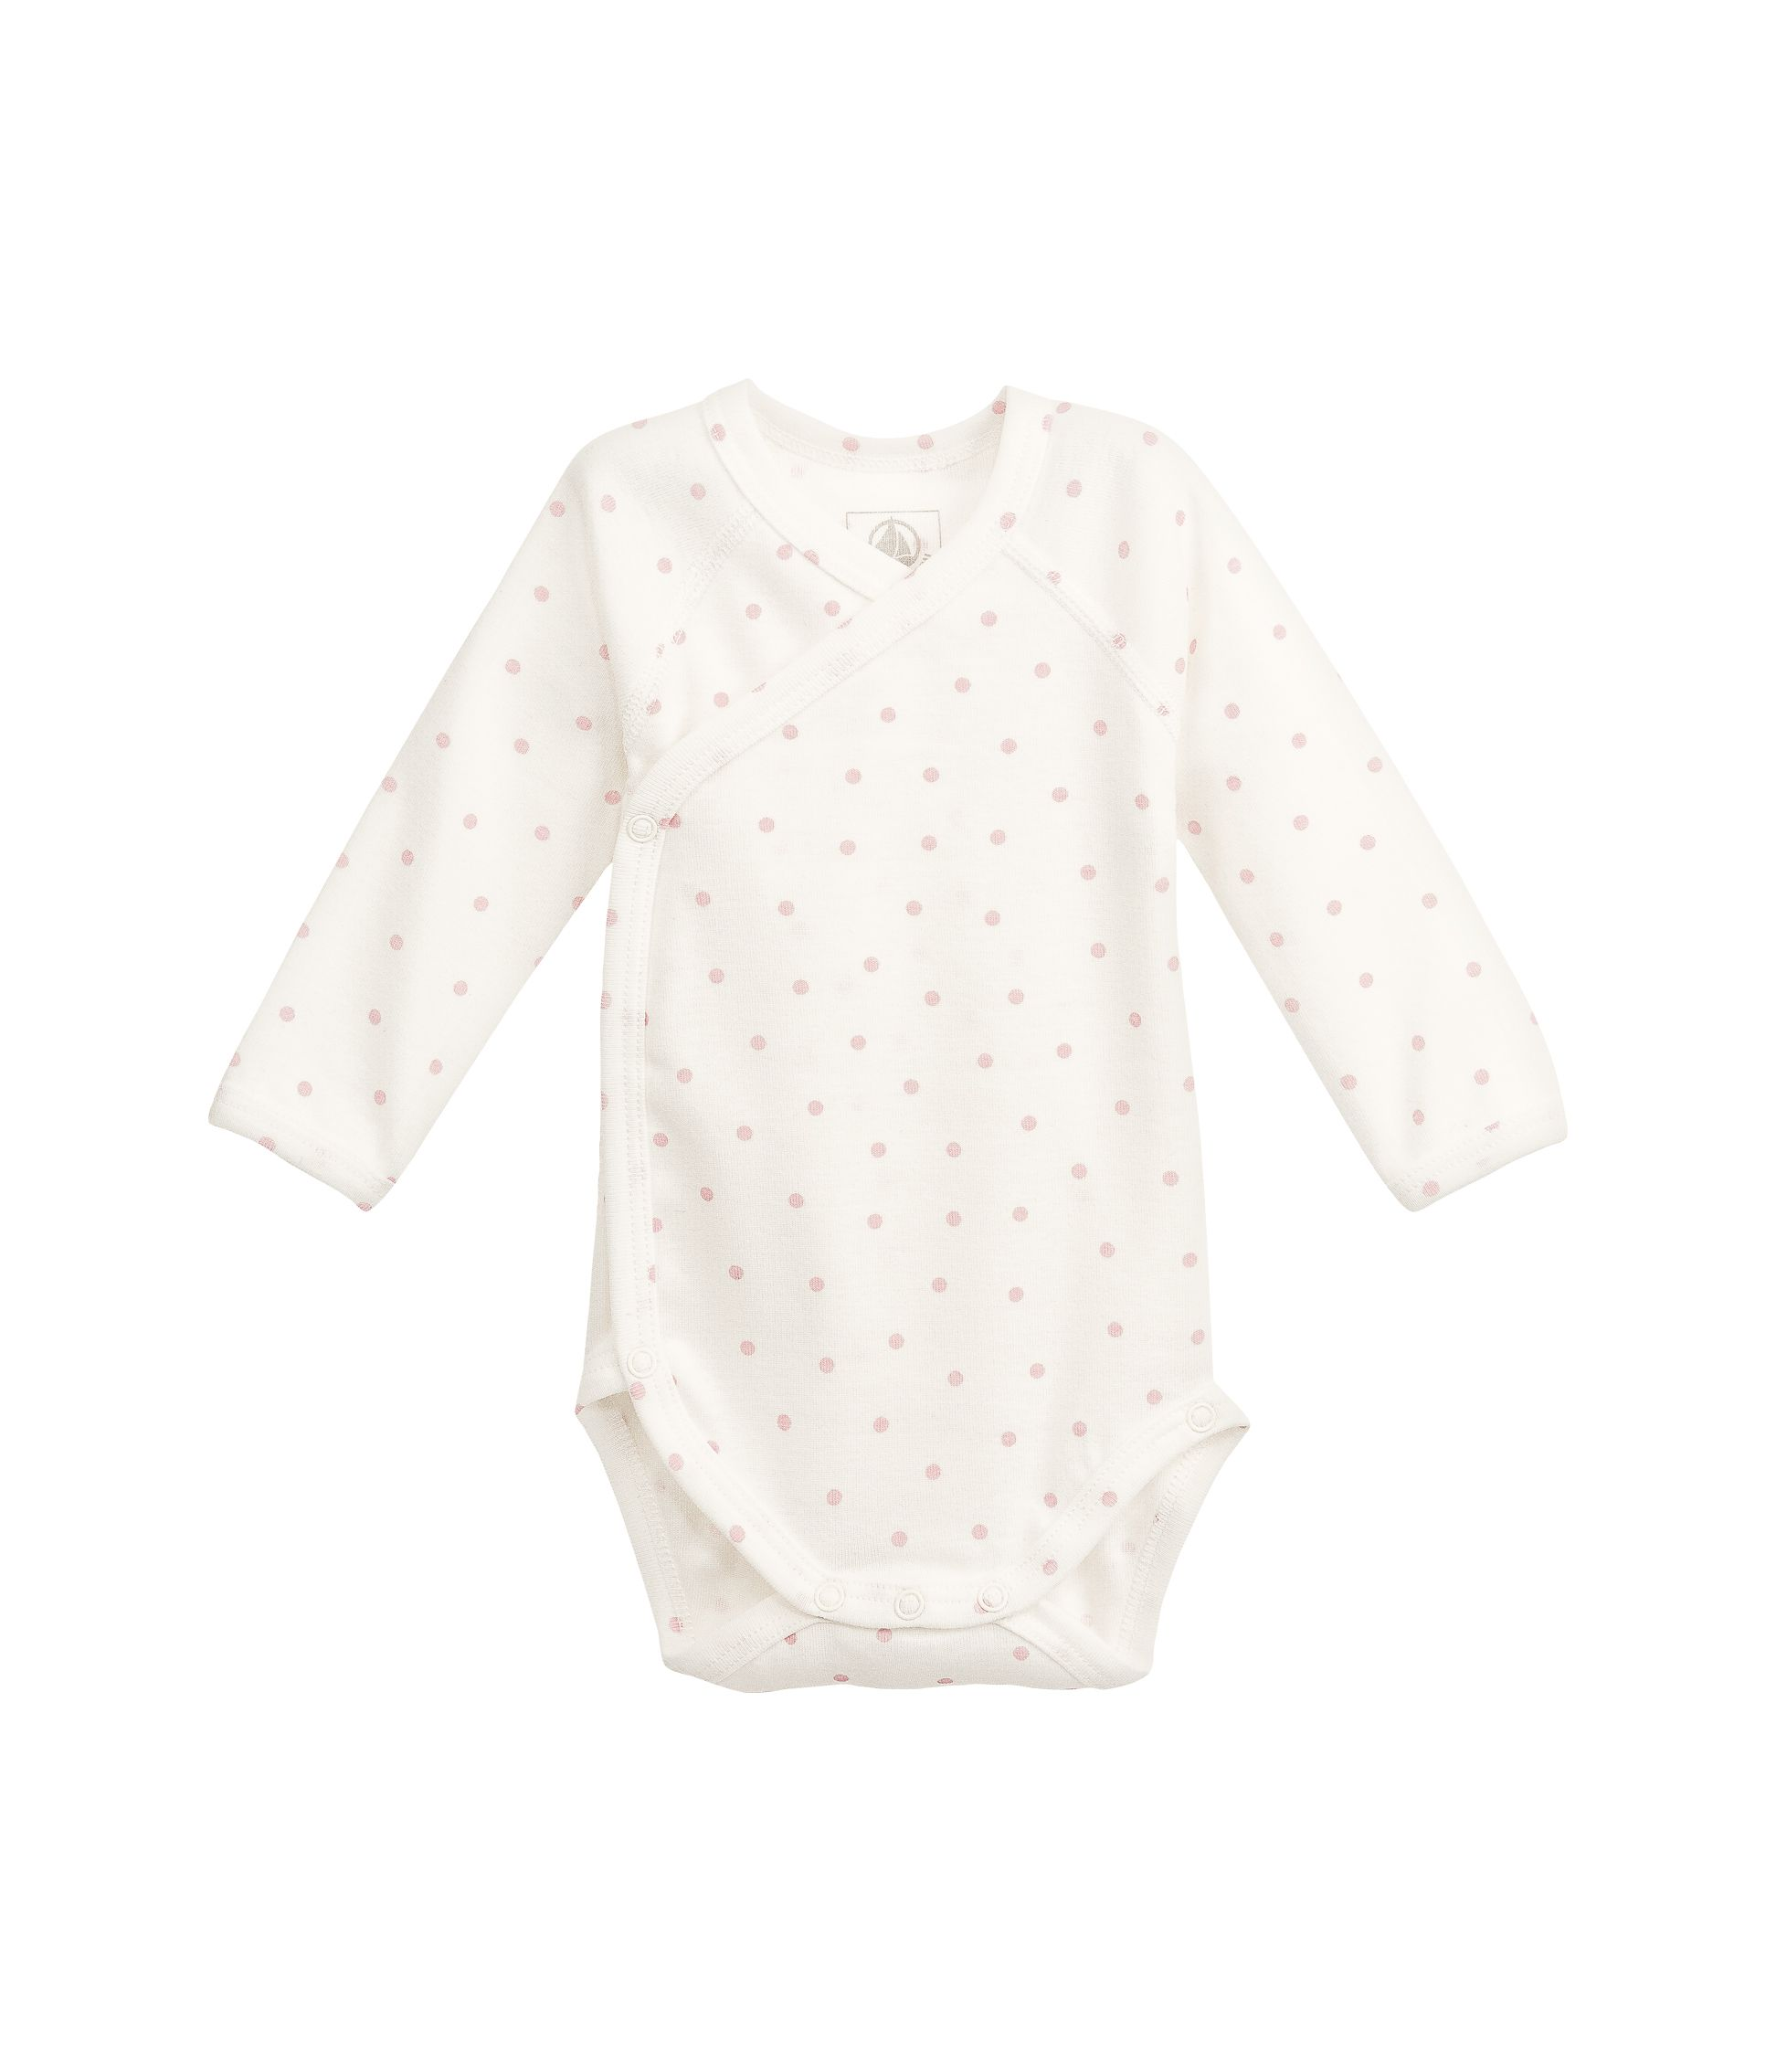 Newborn baby long-sleeved cotton bodysuit